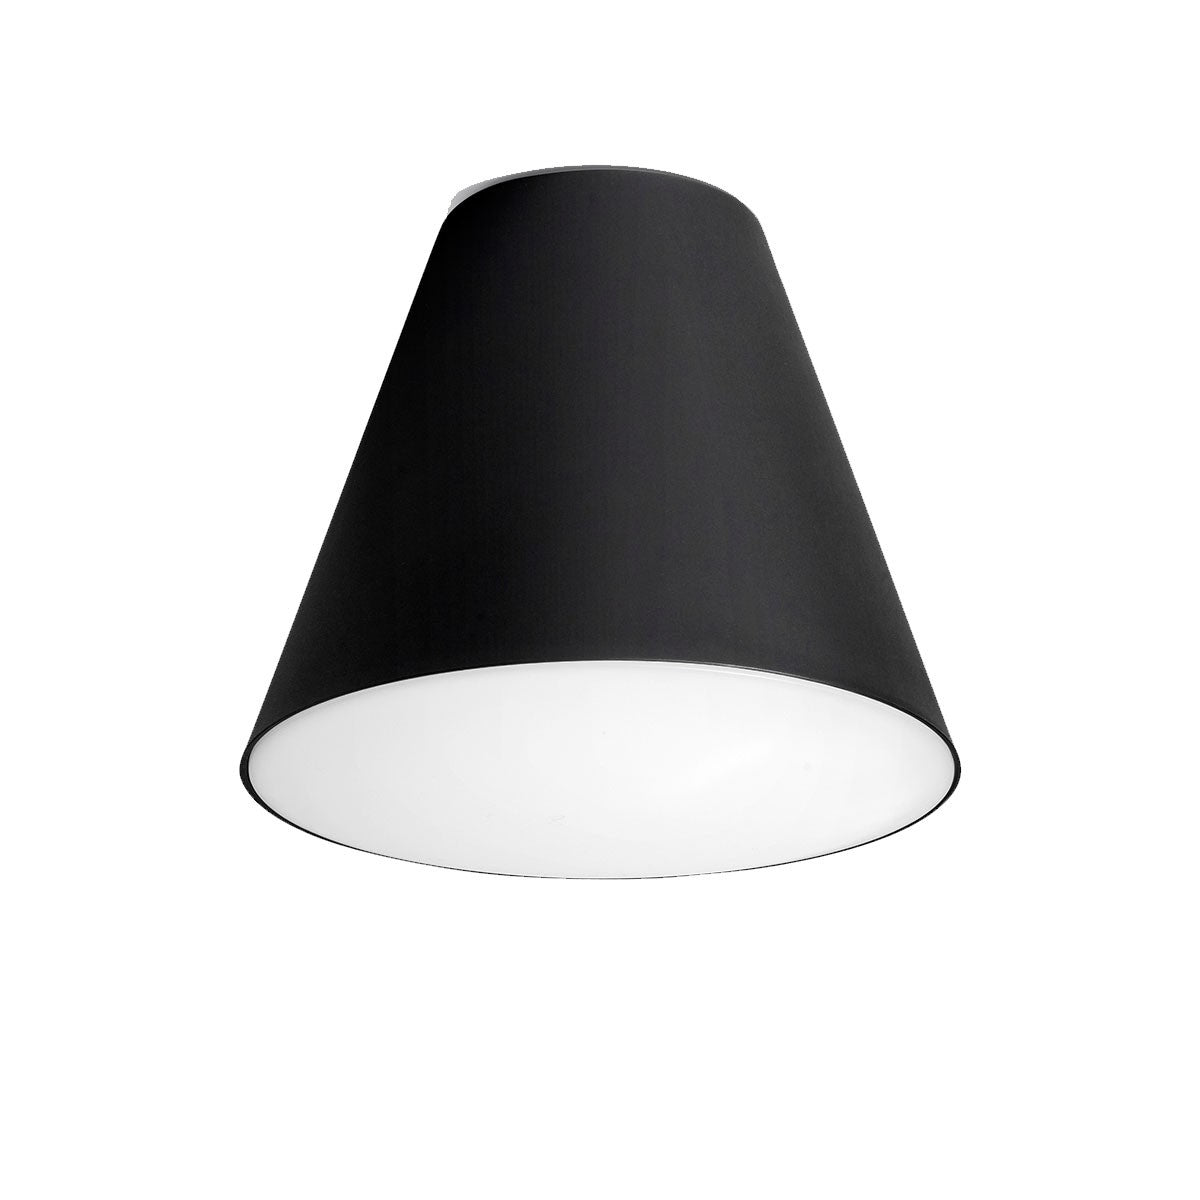 Hay Sinker ceiling light, black